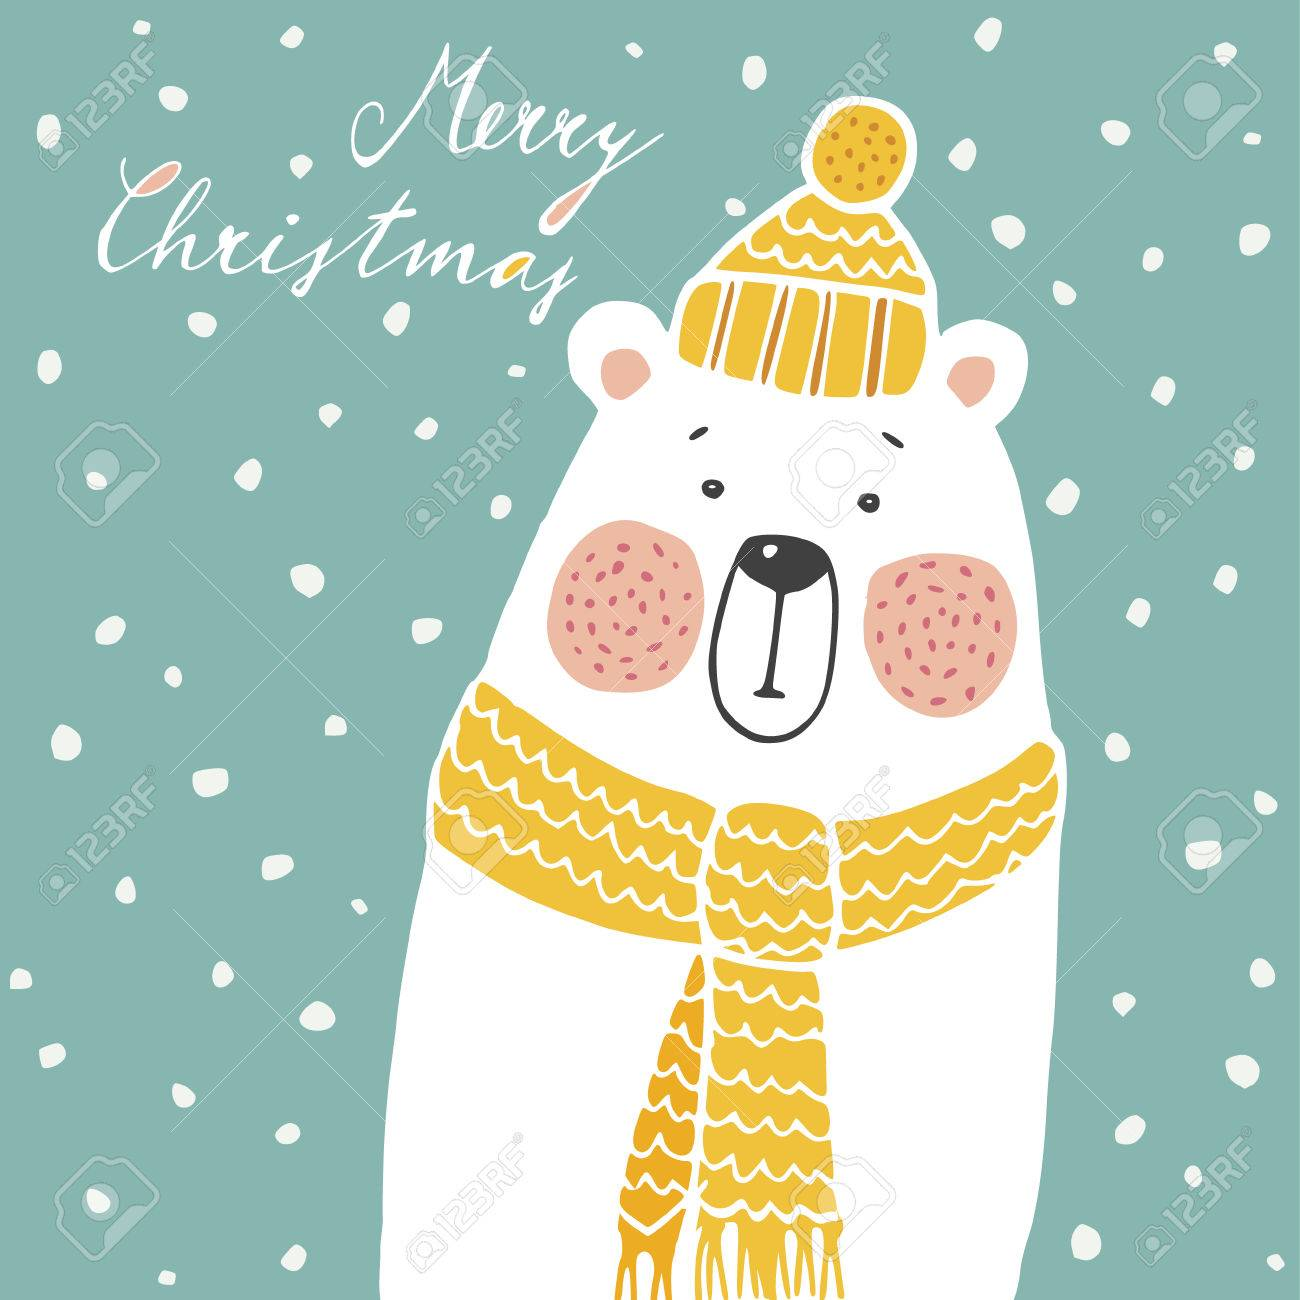 Cute christmas greeting card, invitation, with hand drawn polar bear wearing knitted scarf and hat, vector illustration background - 47449772